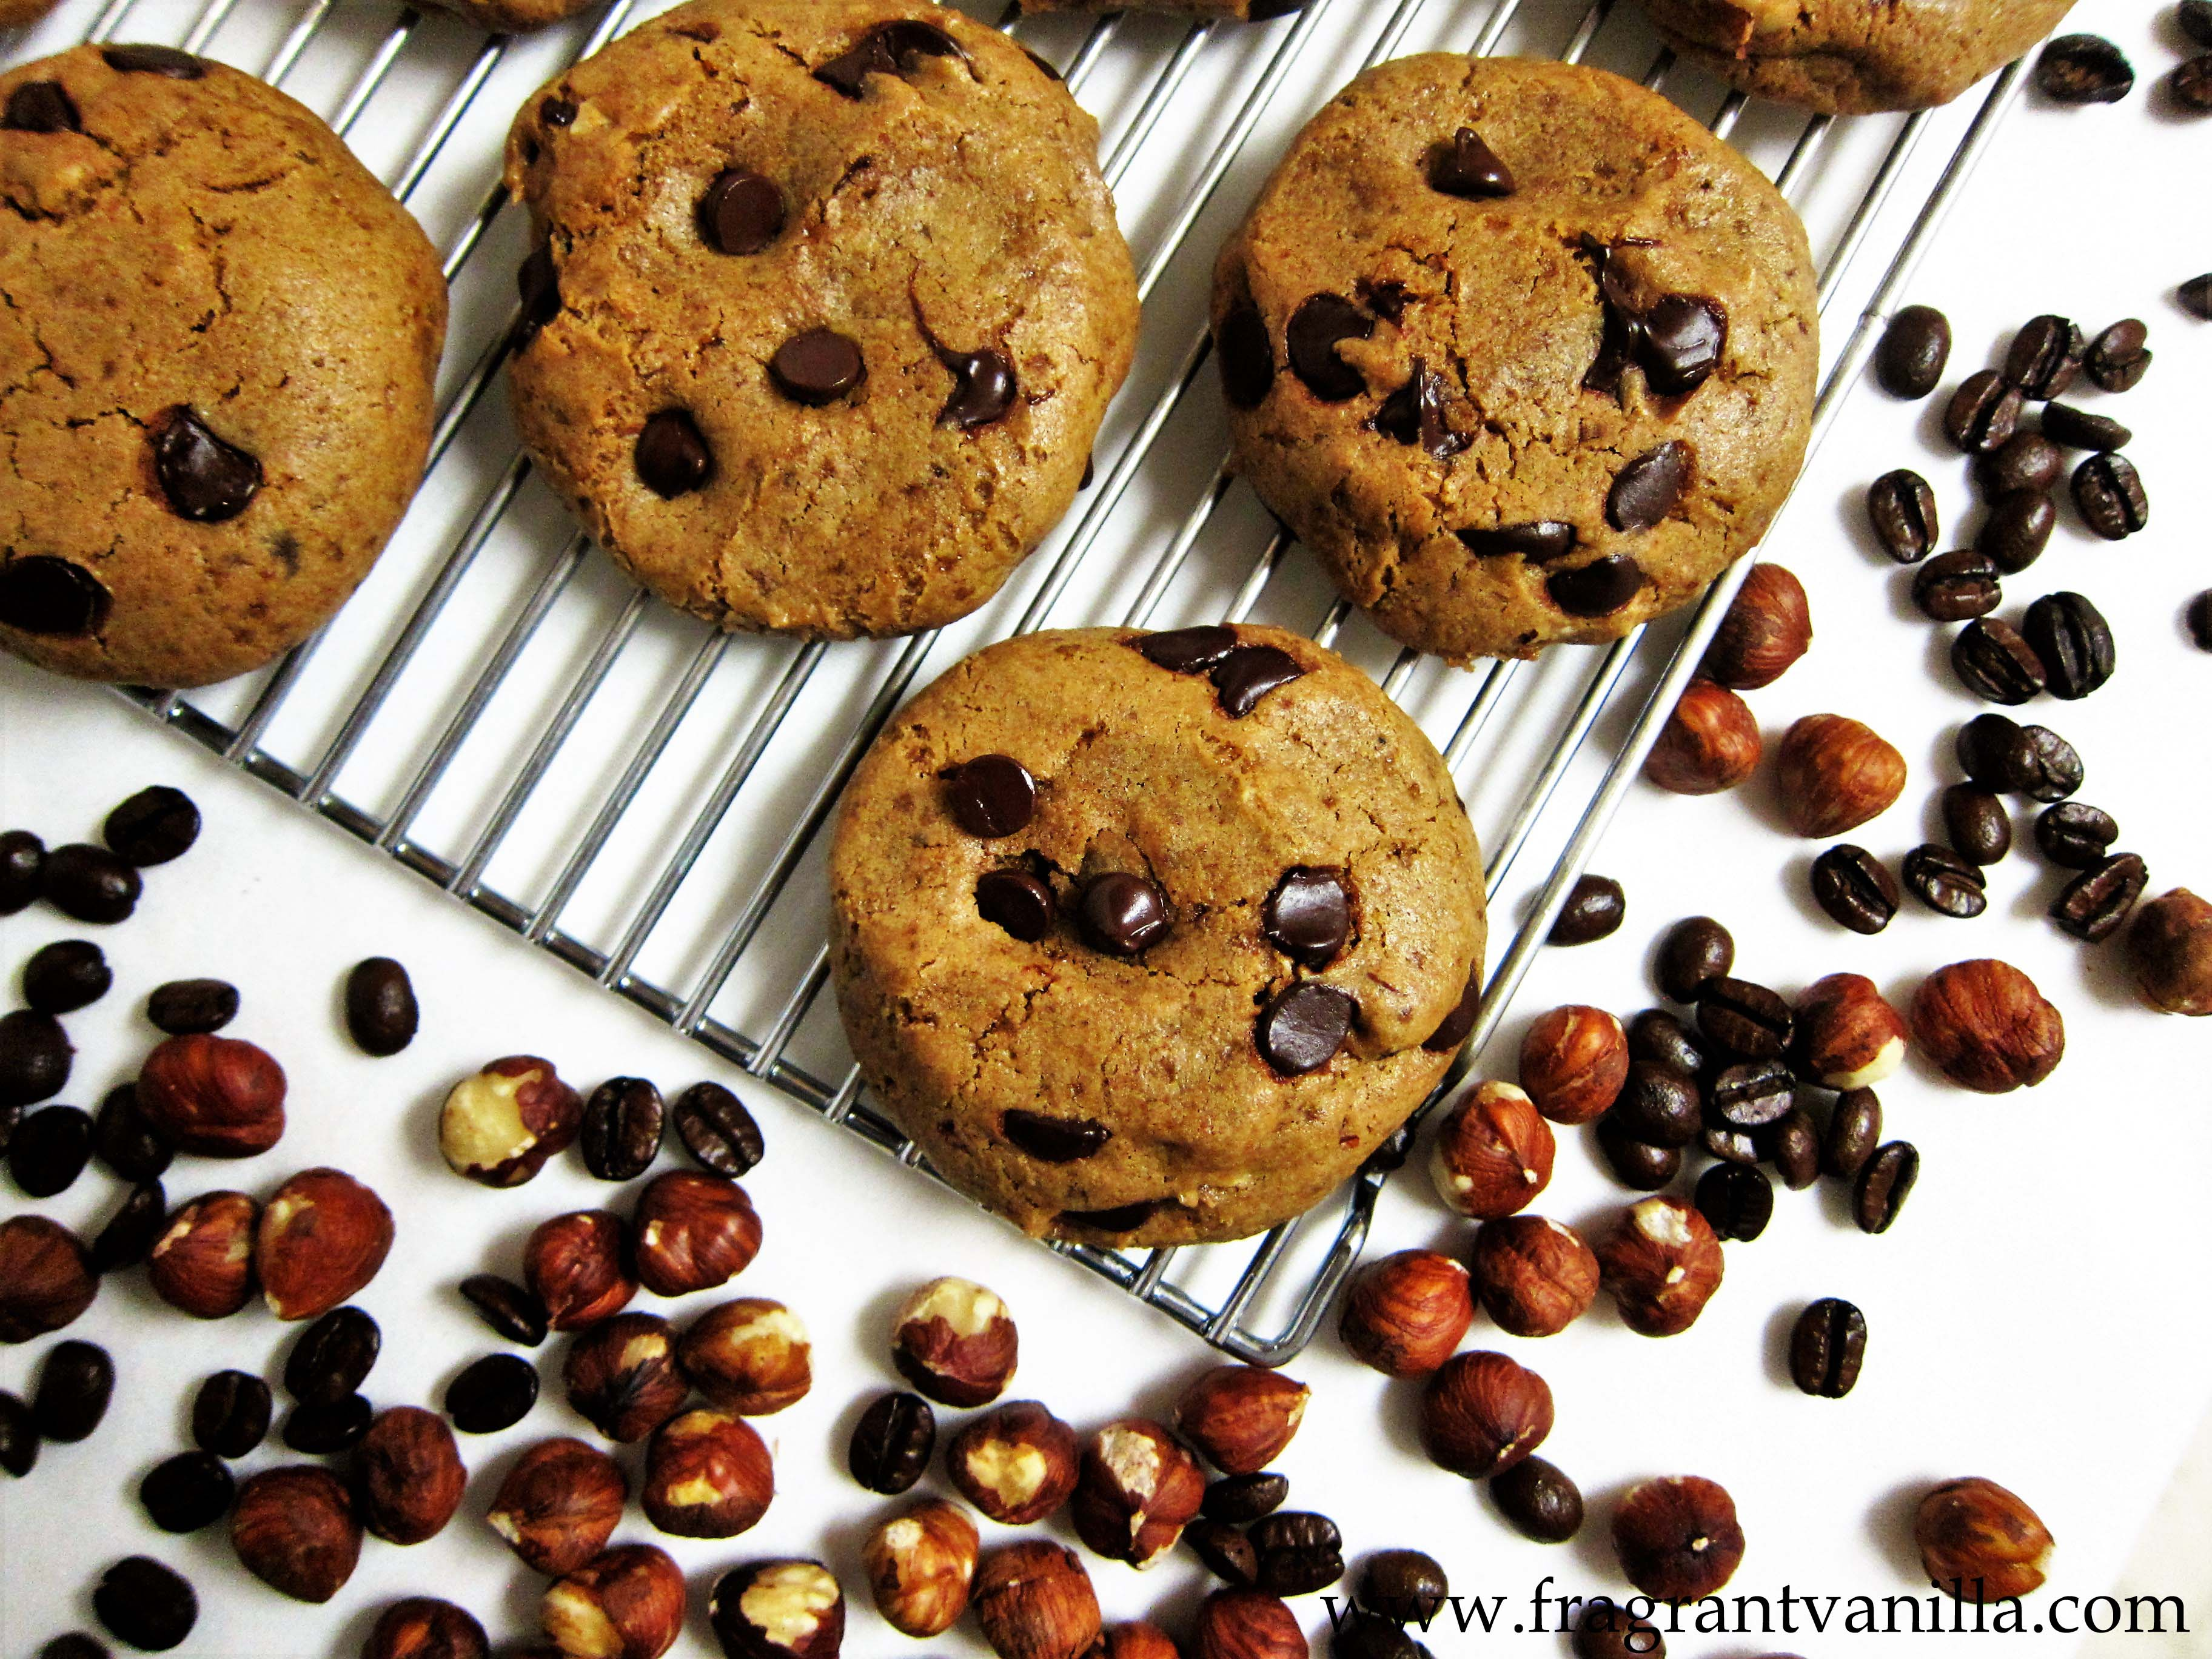 Vegan Hazelnut Coffee Chocolate Chip Cookies